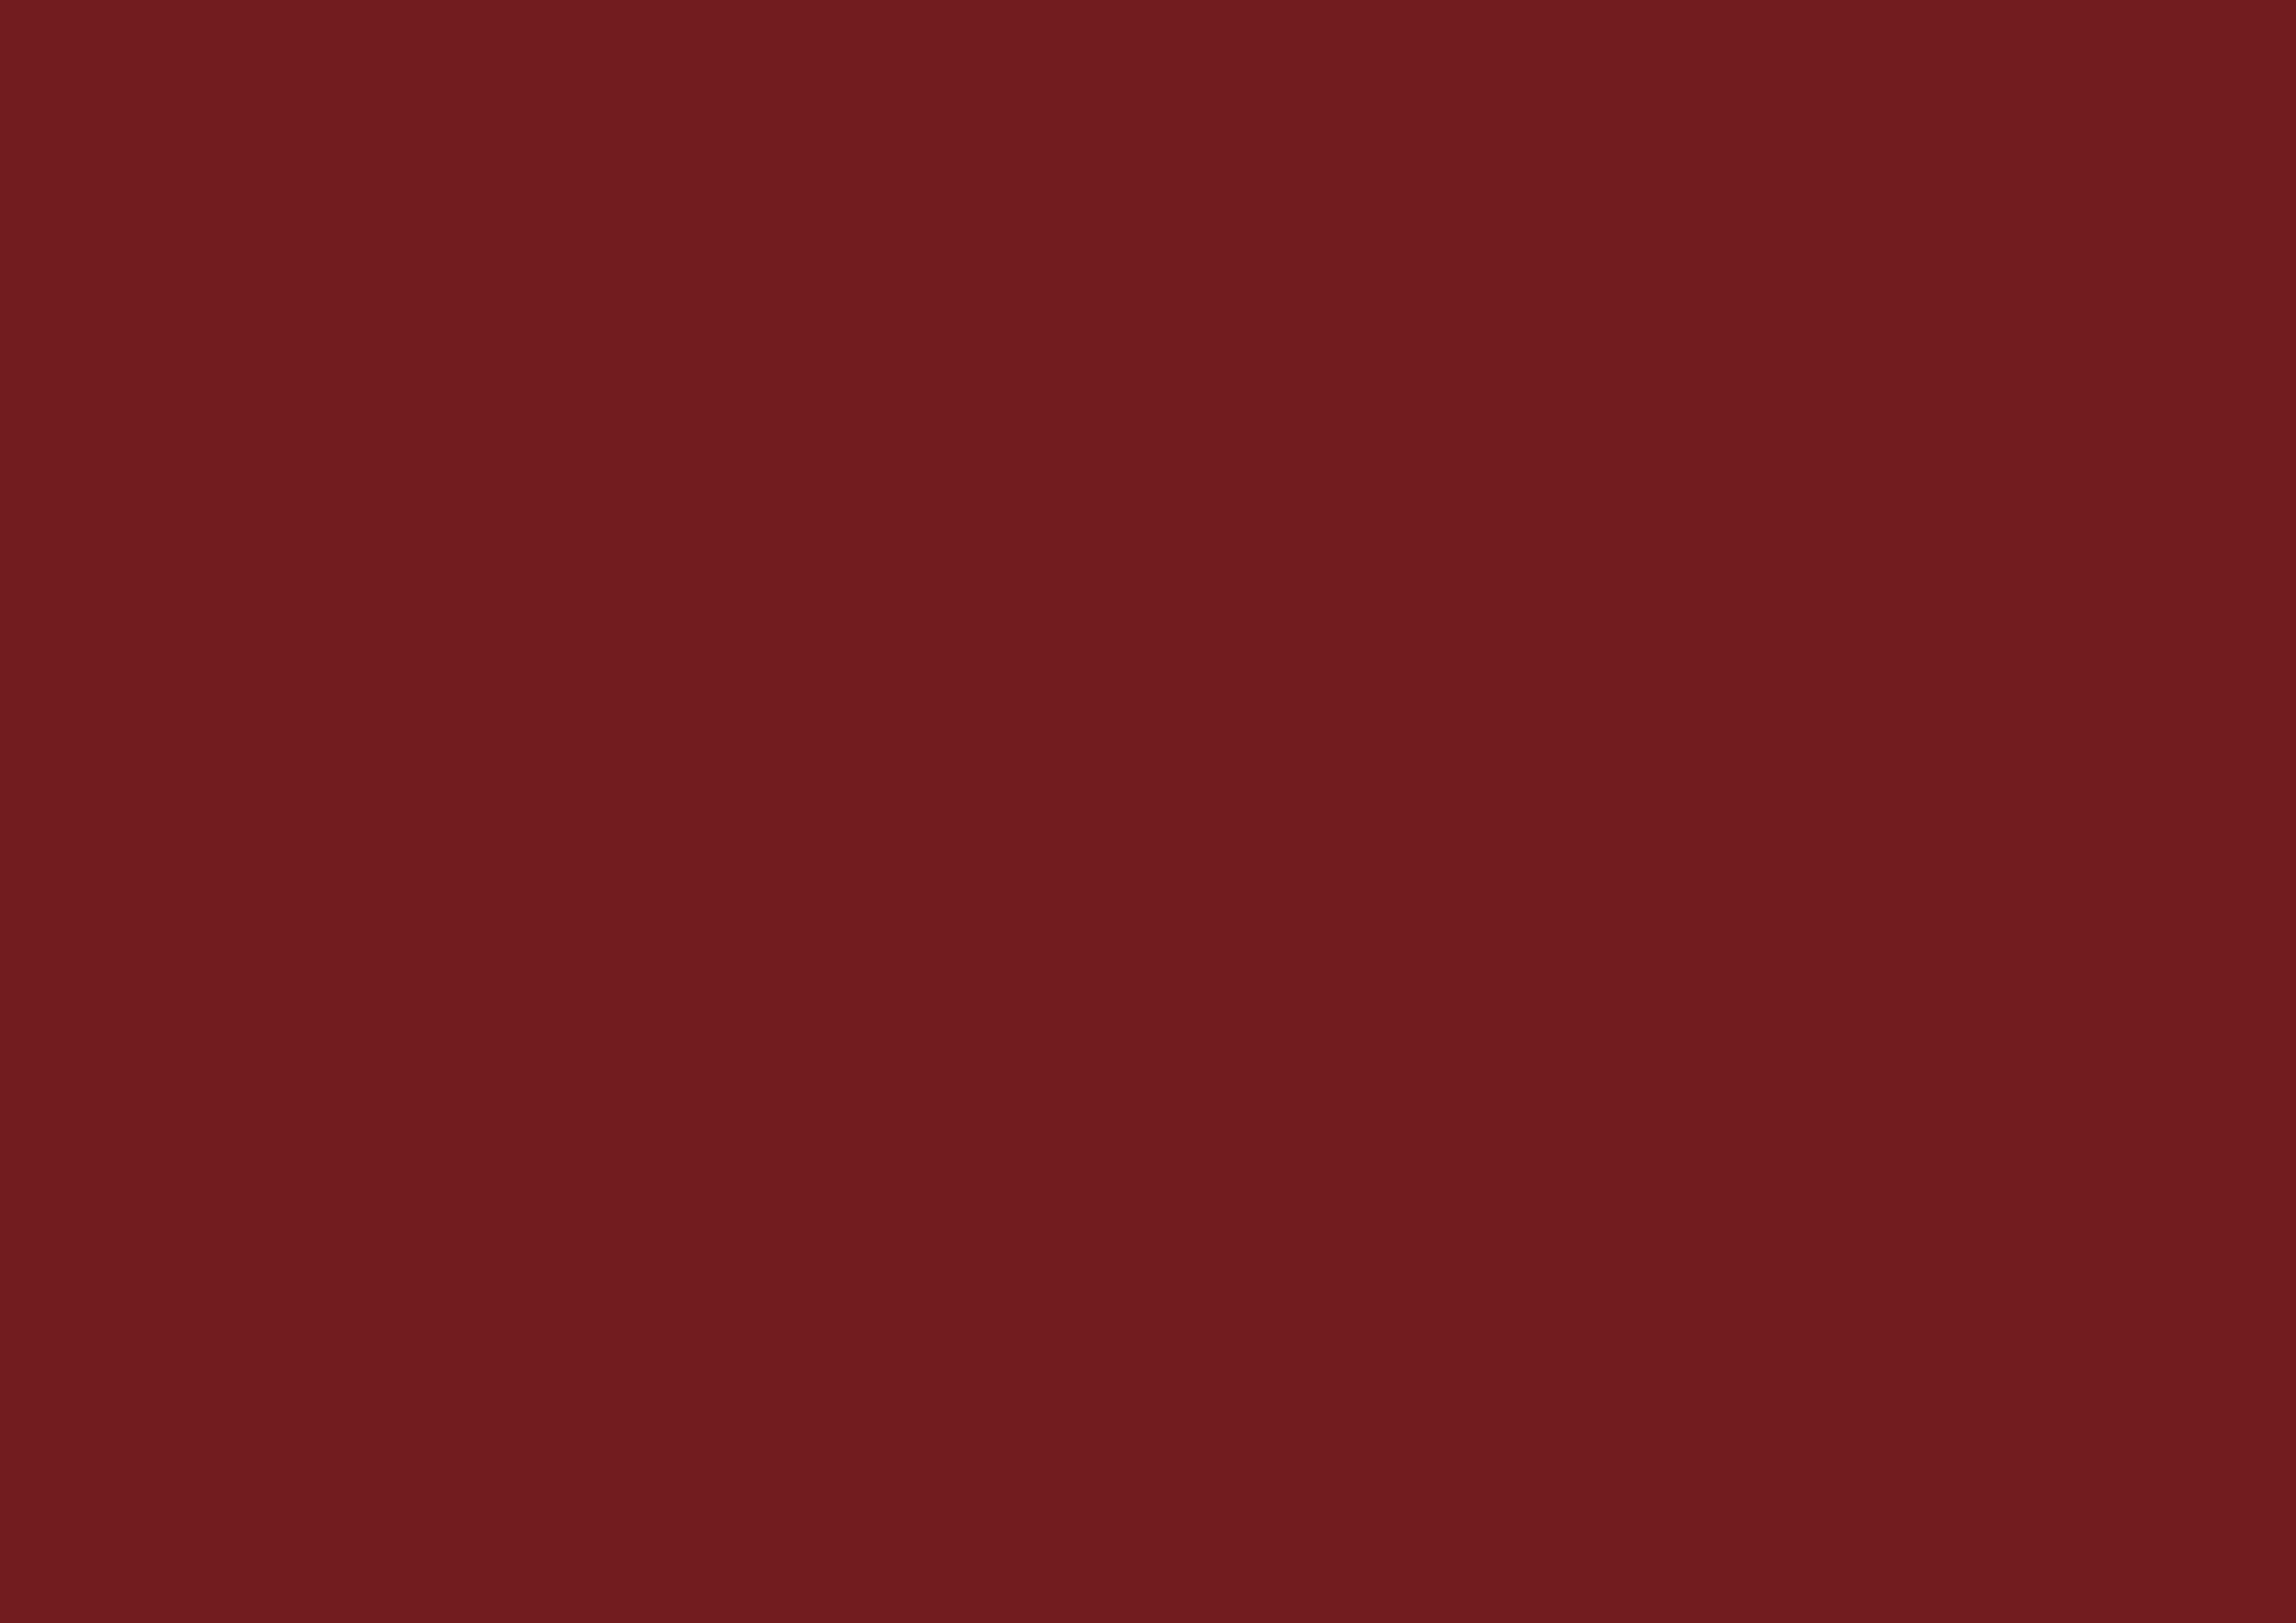 3508x2480 Persian Plum Solid Color Background